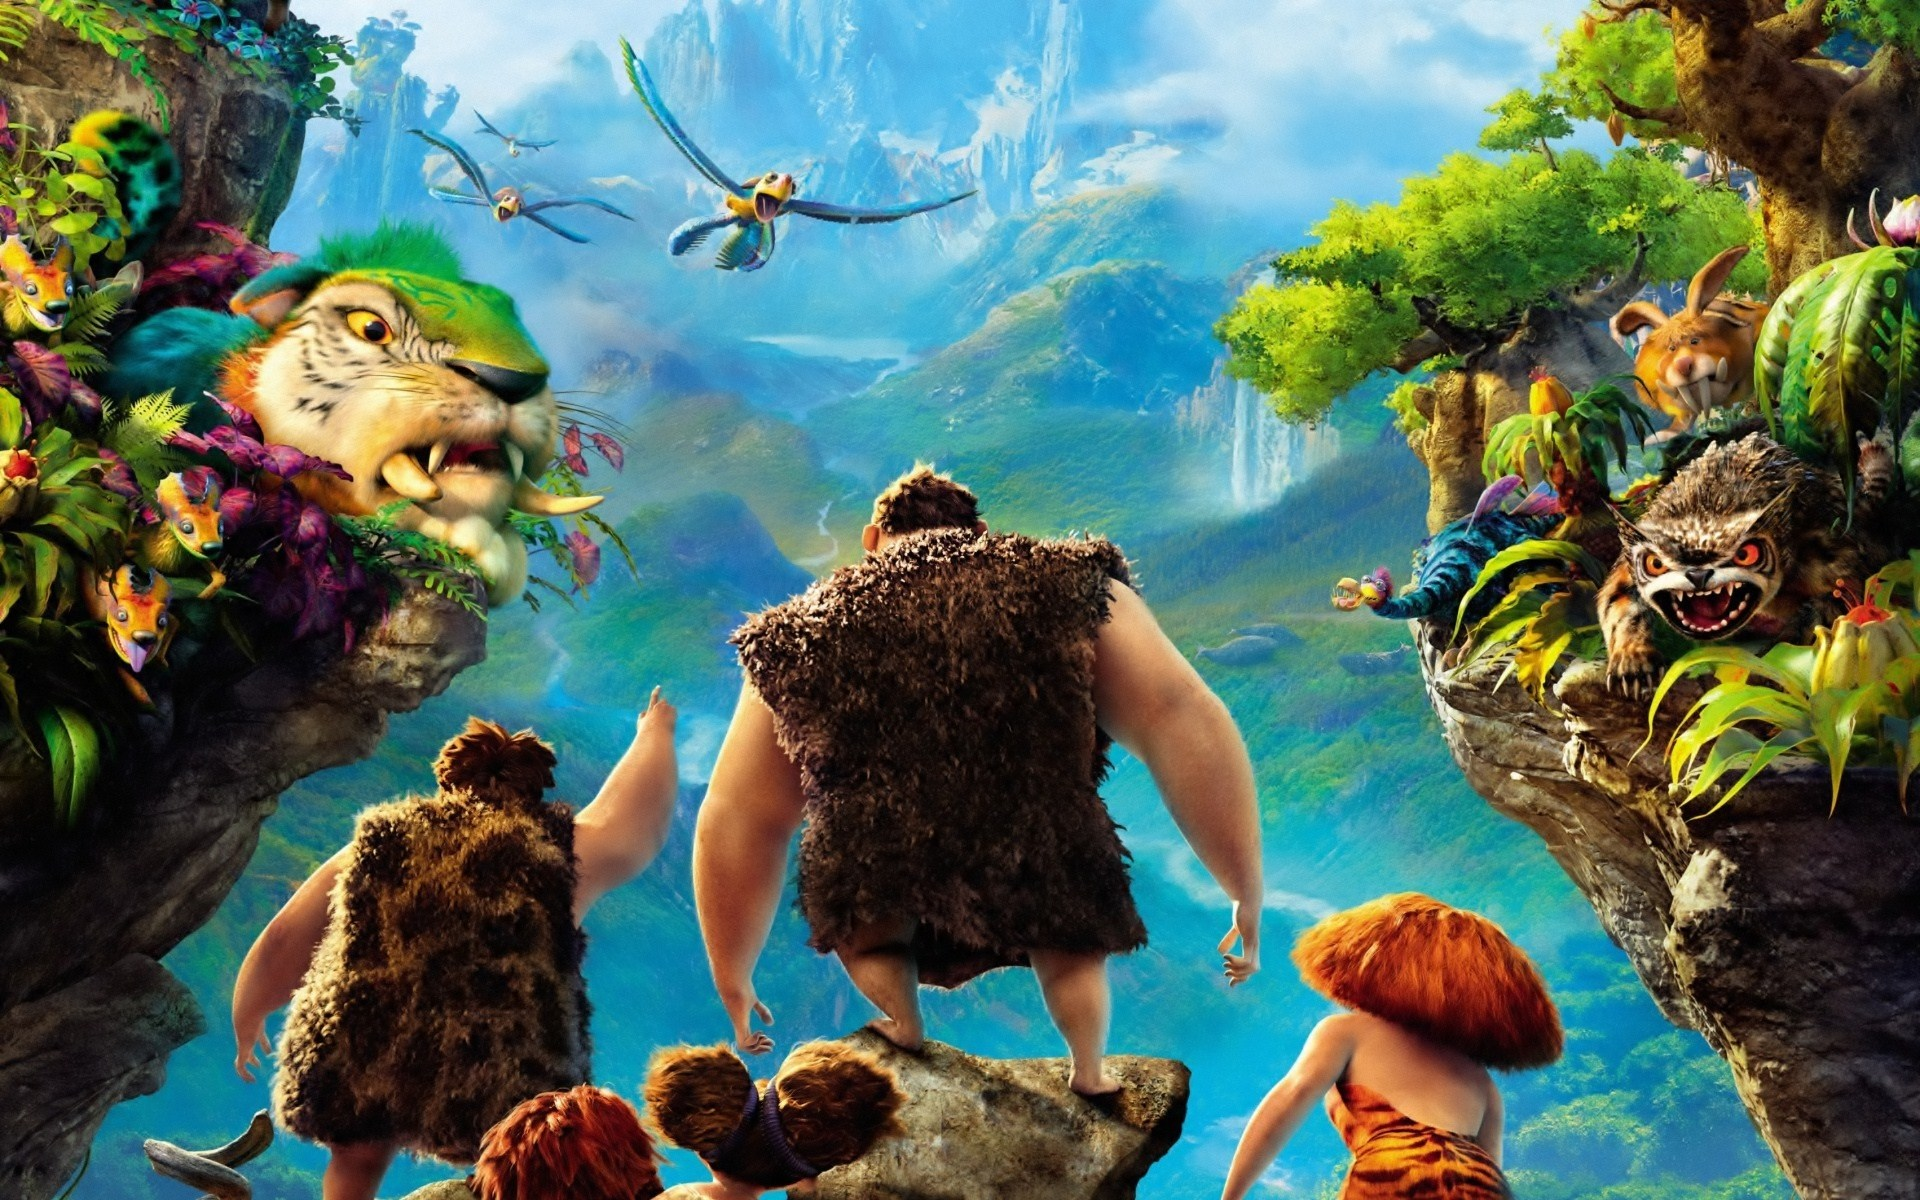 The croods 2 hd desktop wallpapers 7wallpapers the croods 2 widescreen wallpapers the croods 2 wallpapers hd voltagebd Choice Image